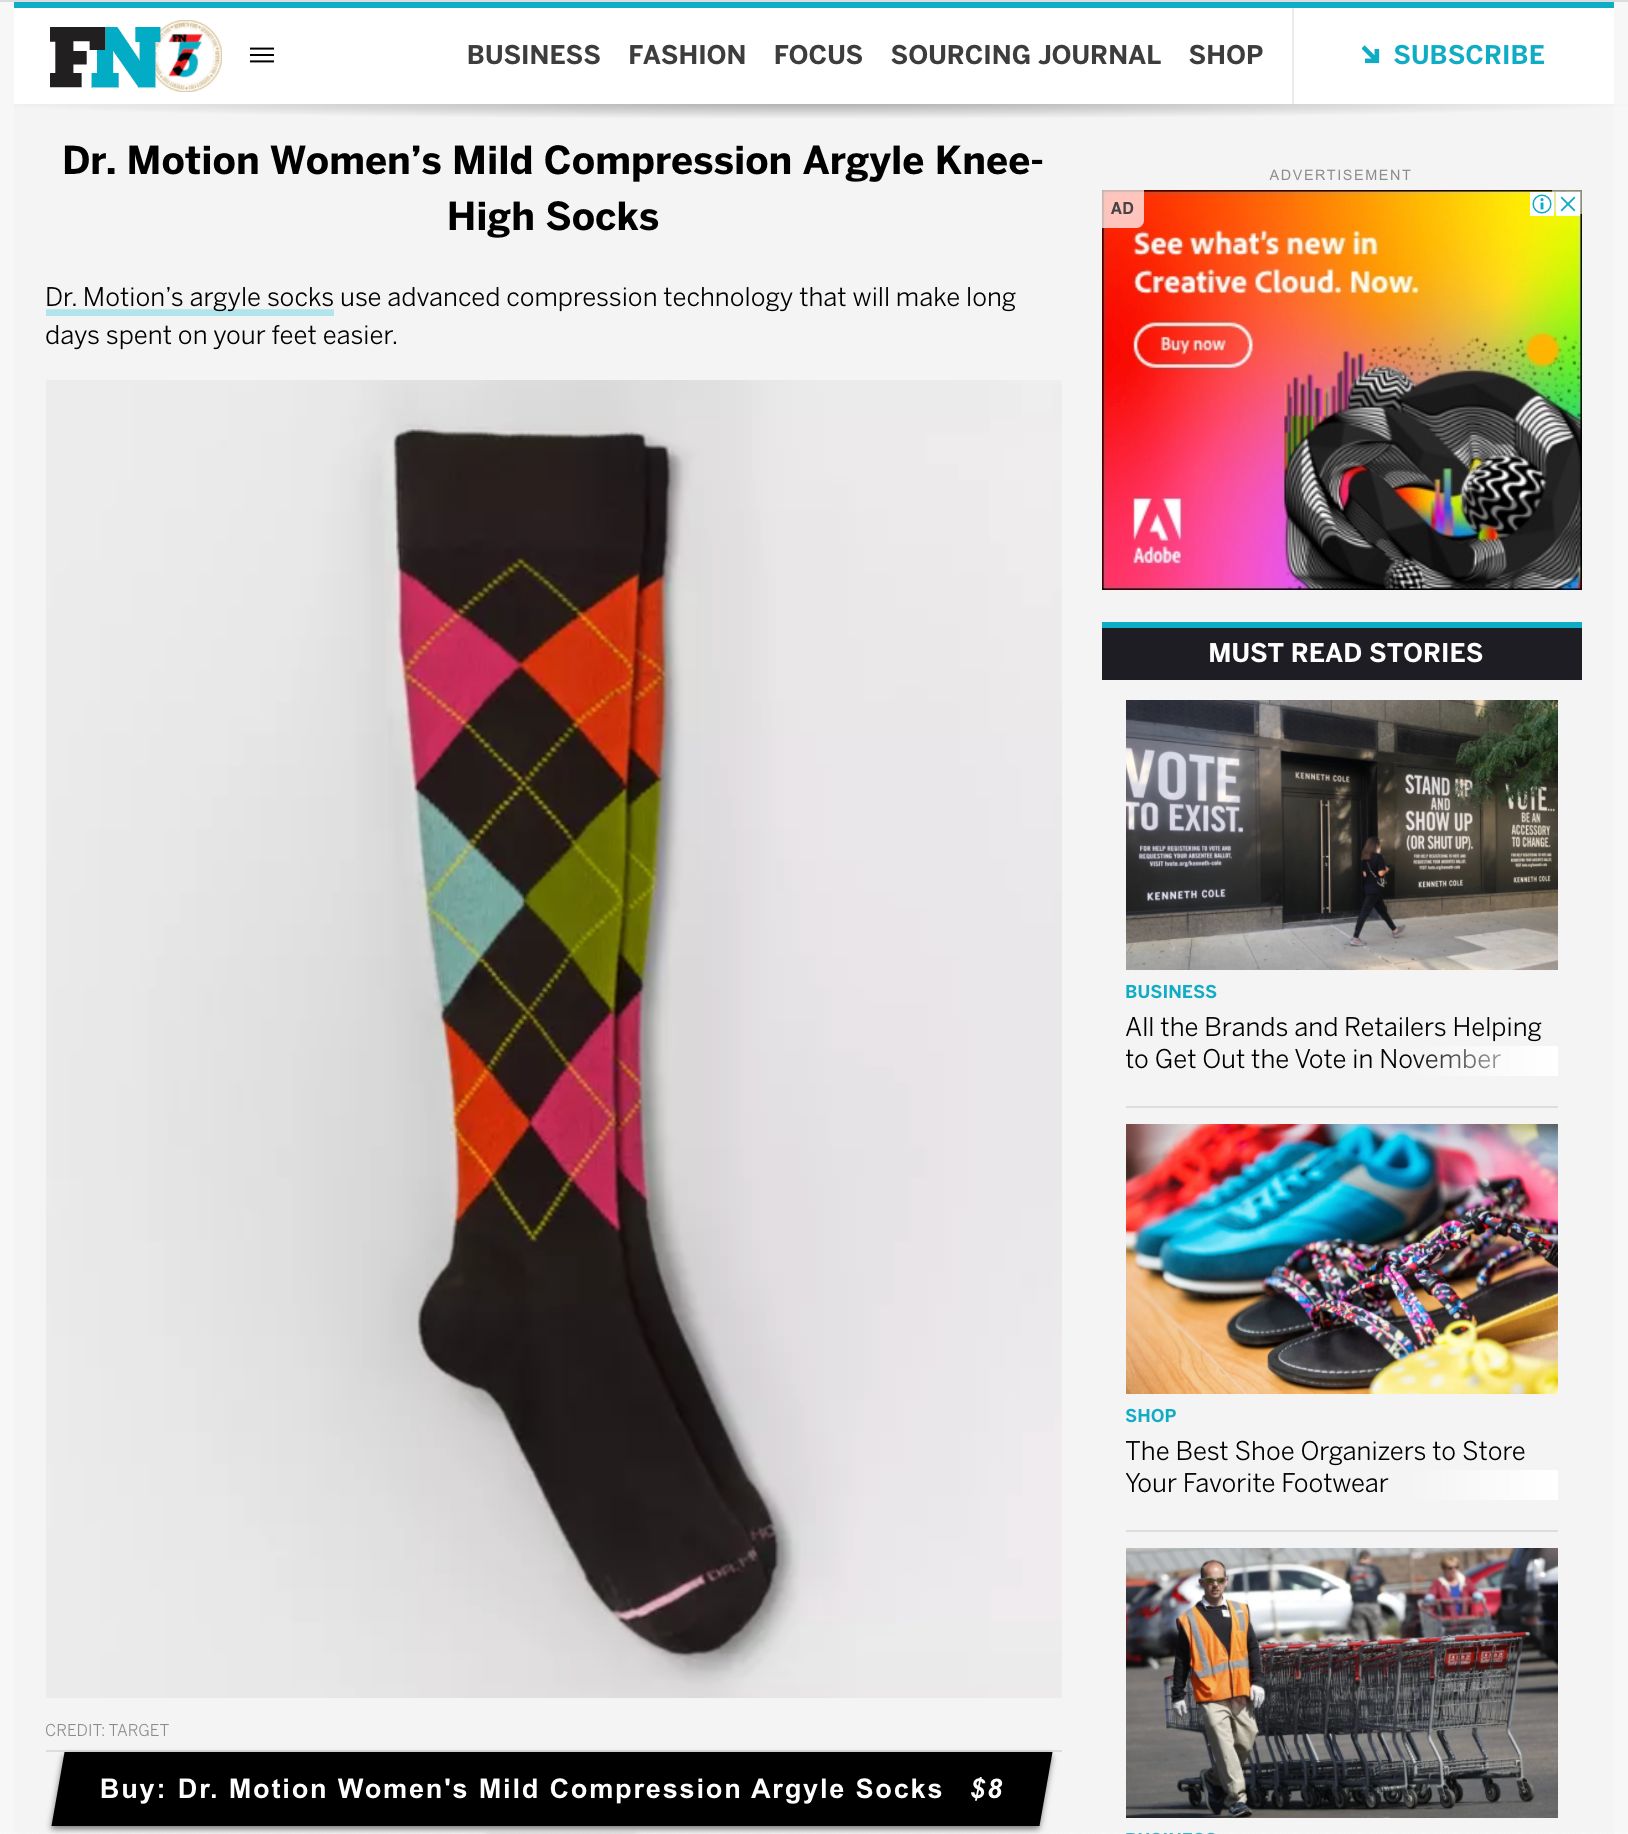 footwear news features dr.motion socks